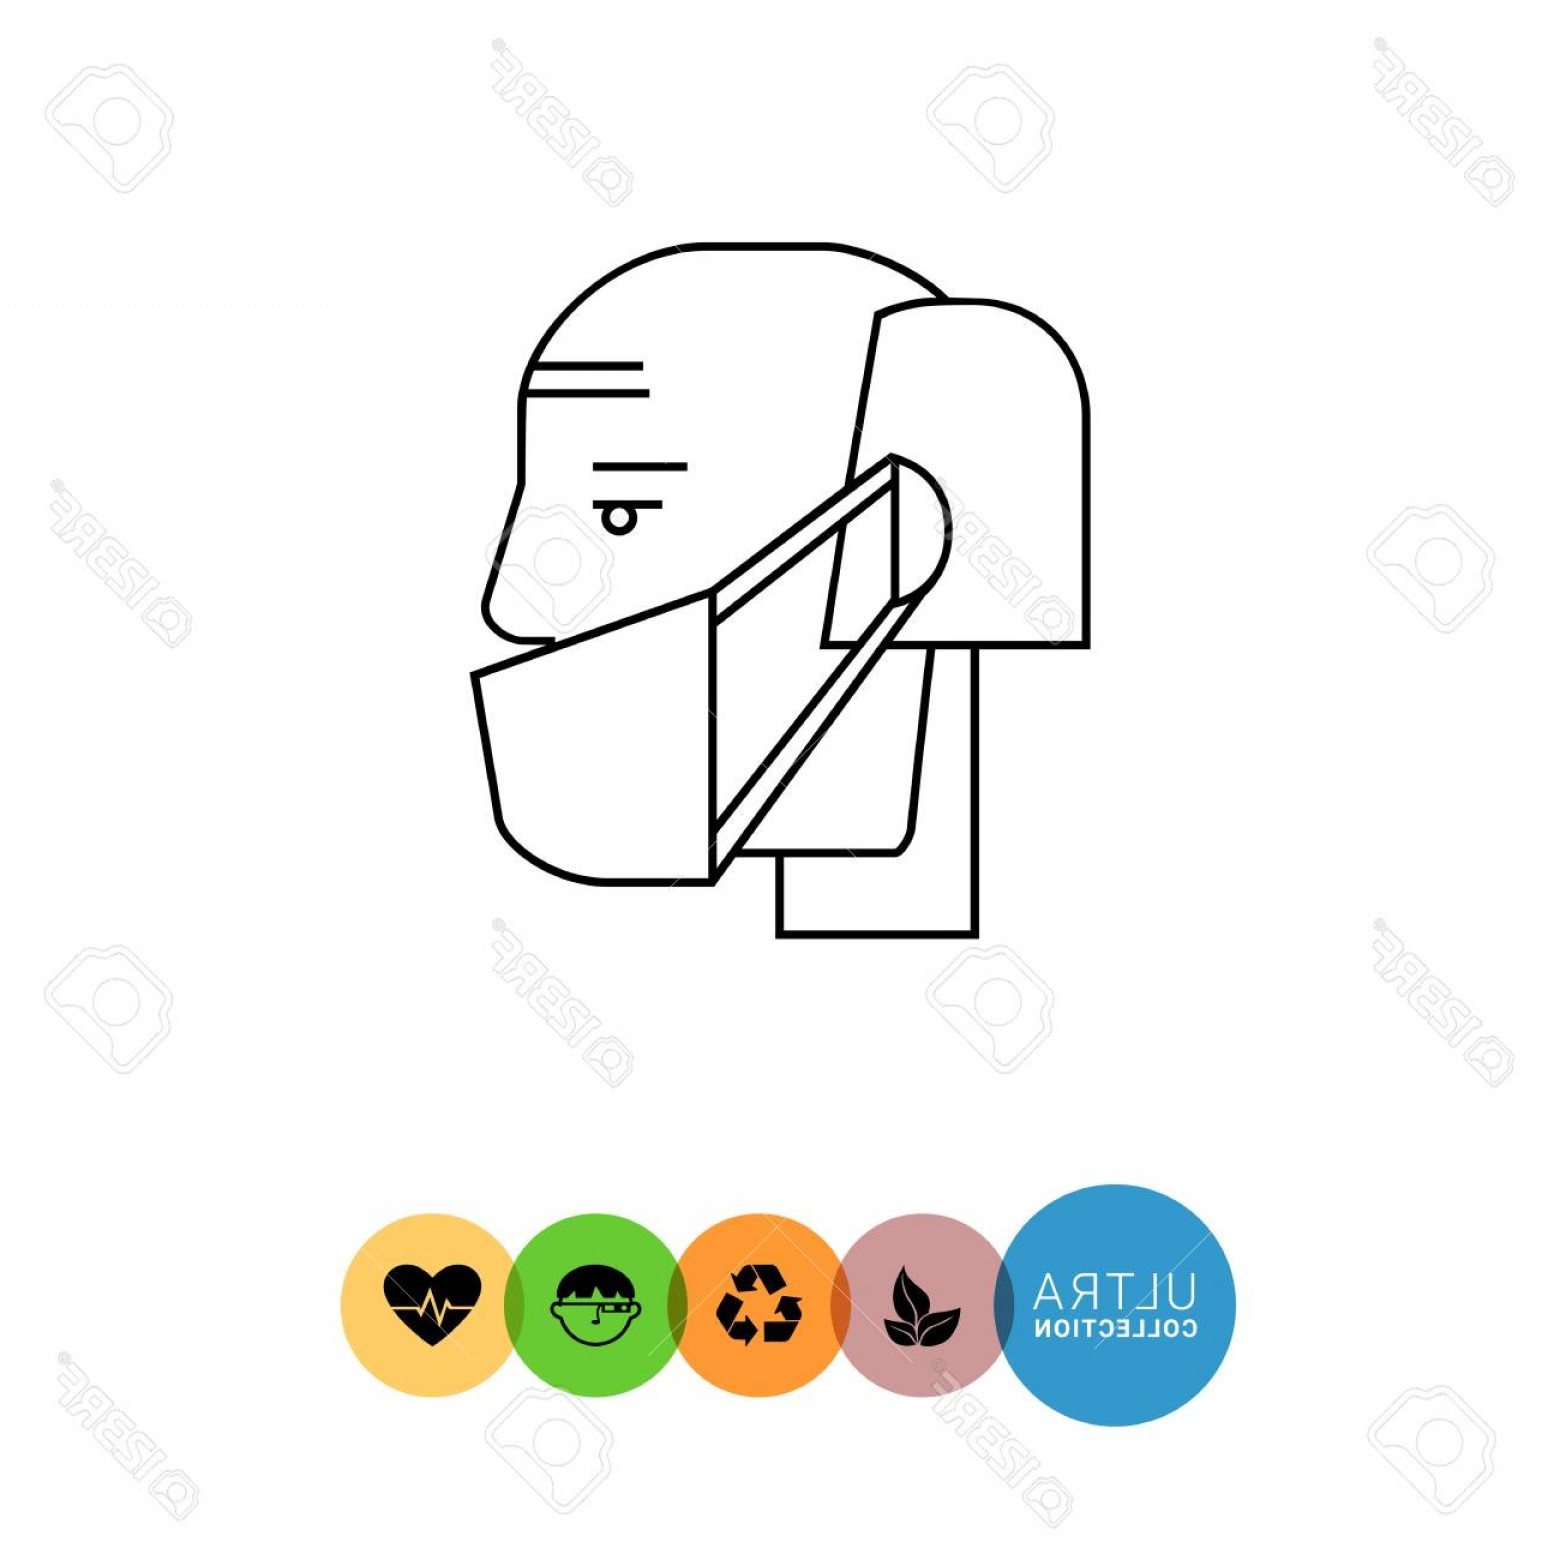 Old Male Icon Vector: Photostock Vector Man In Medical Mask Line Icon Vector Illustration Of Old Male Character In Medical Mask In Profile